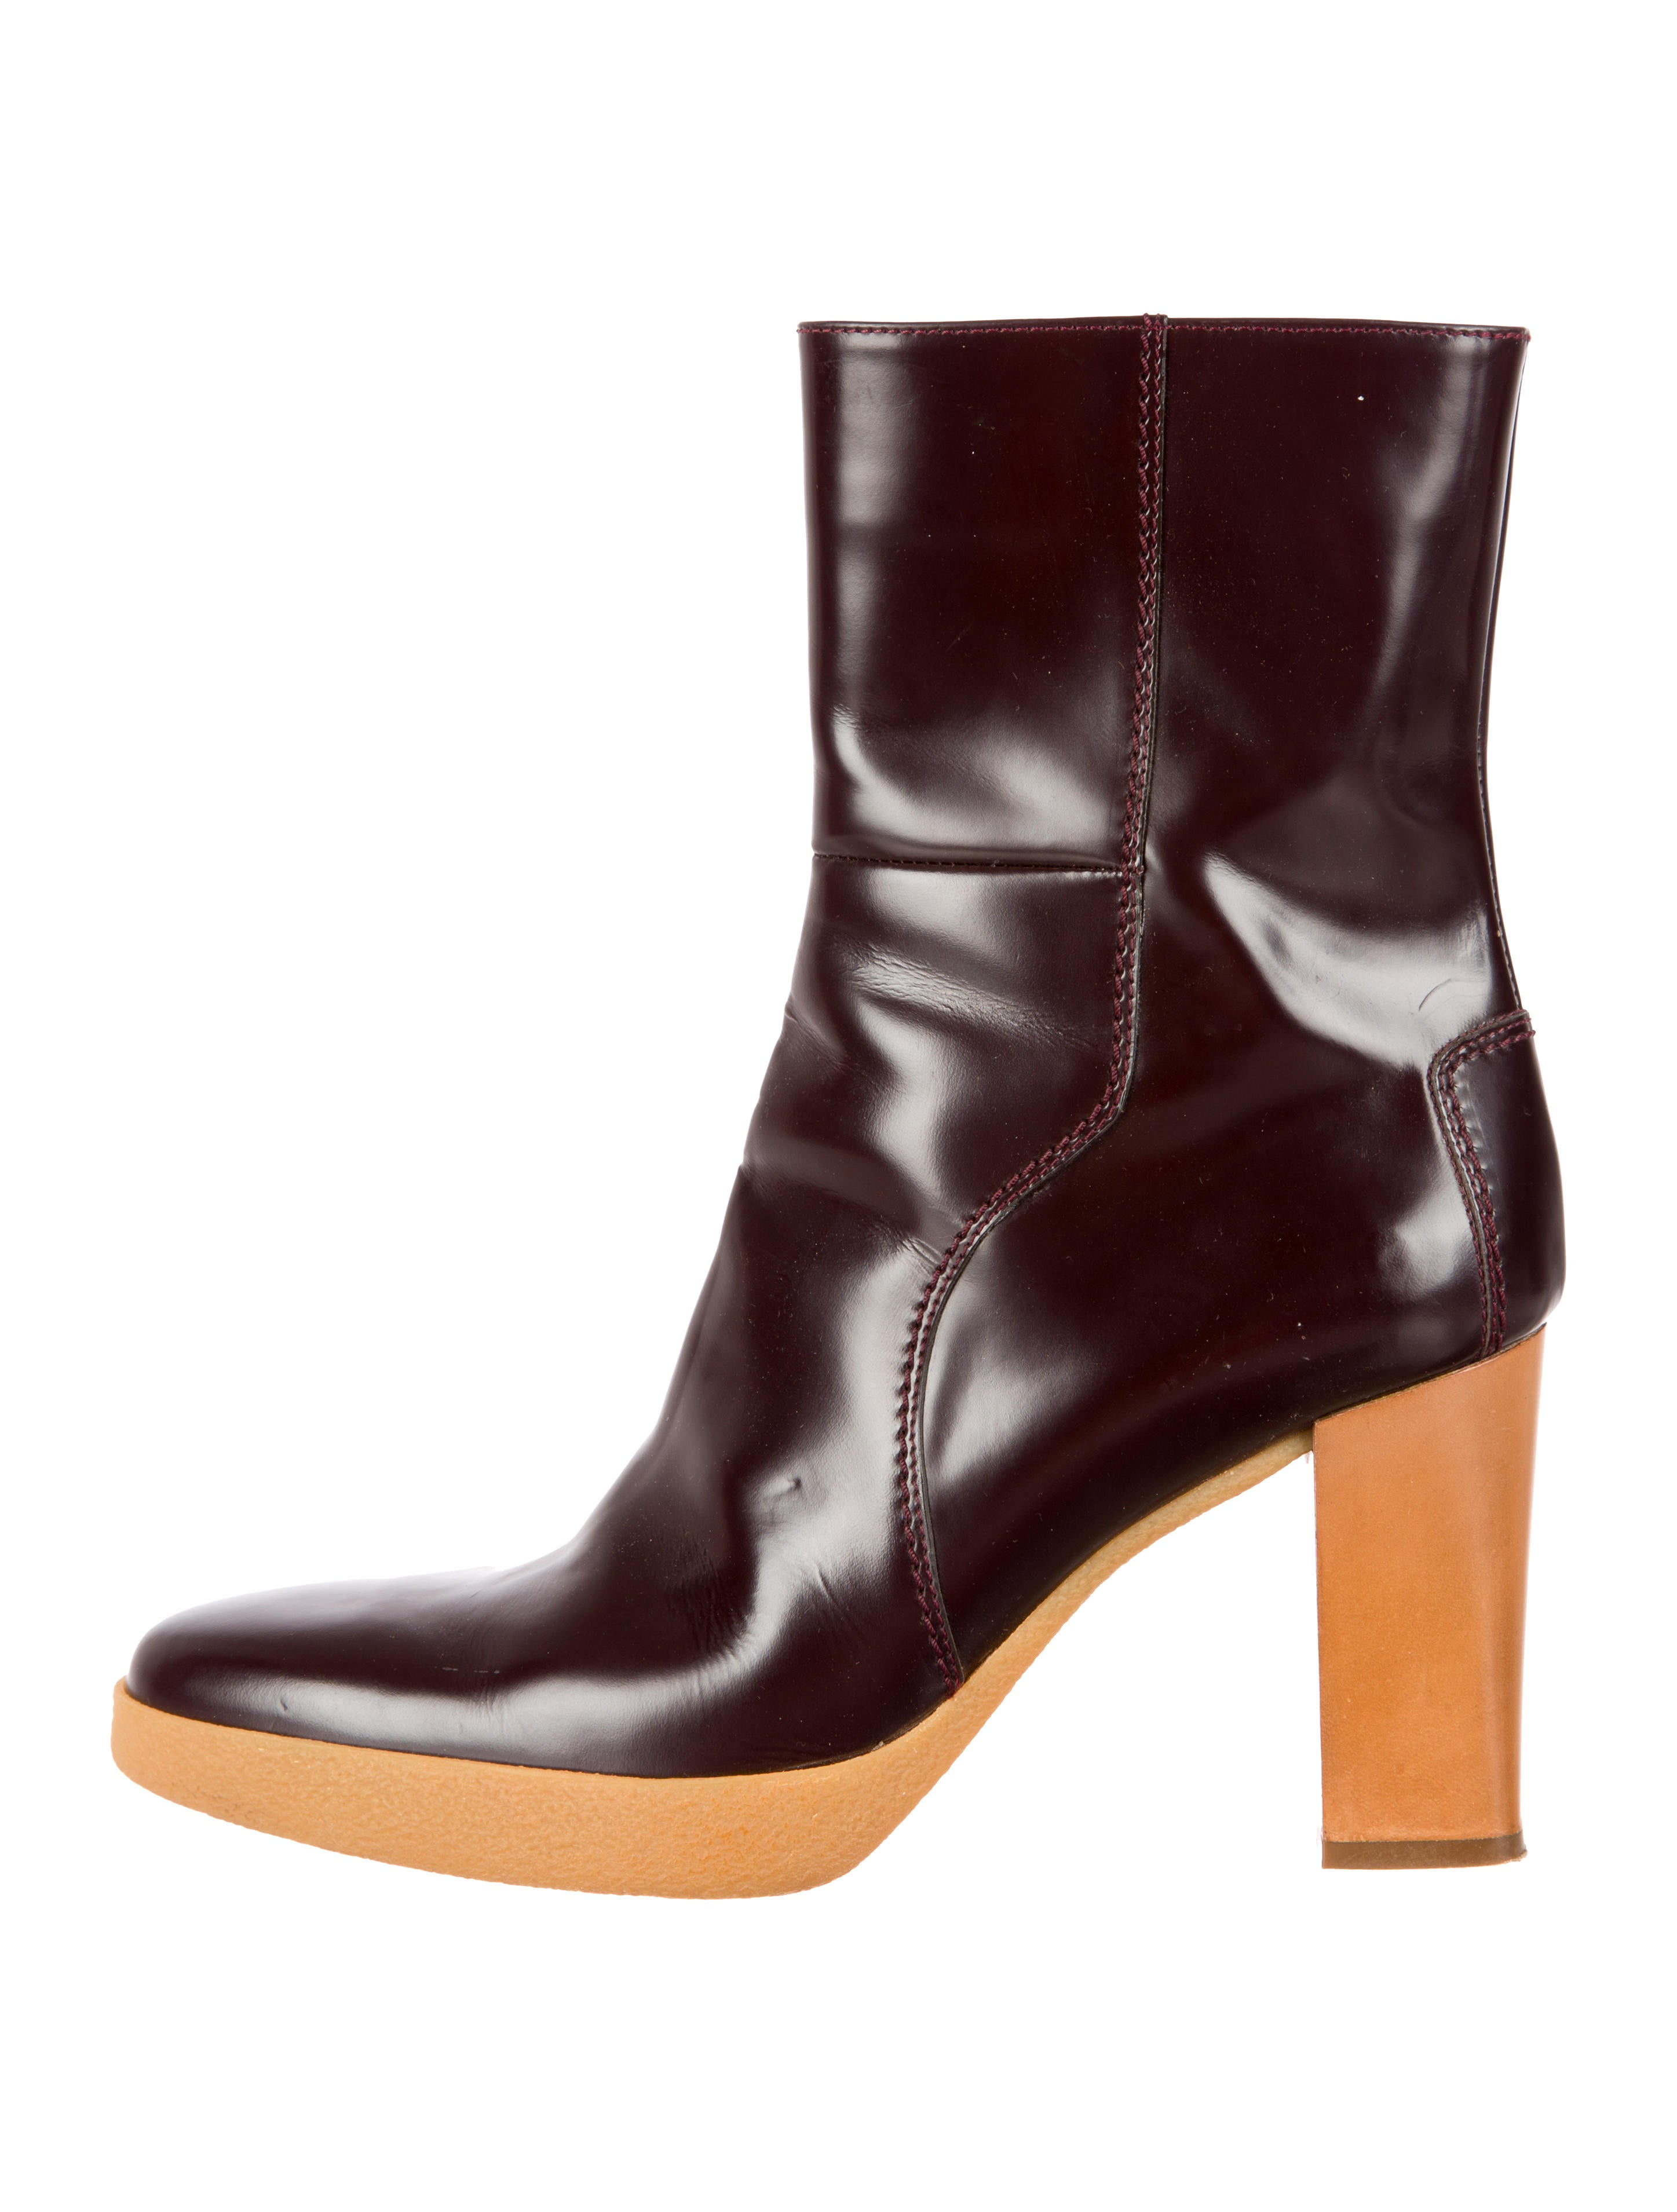 Todu0026#39;s Ankle Boots - Shoes - TOD27681 | The RealReal